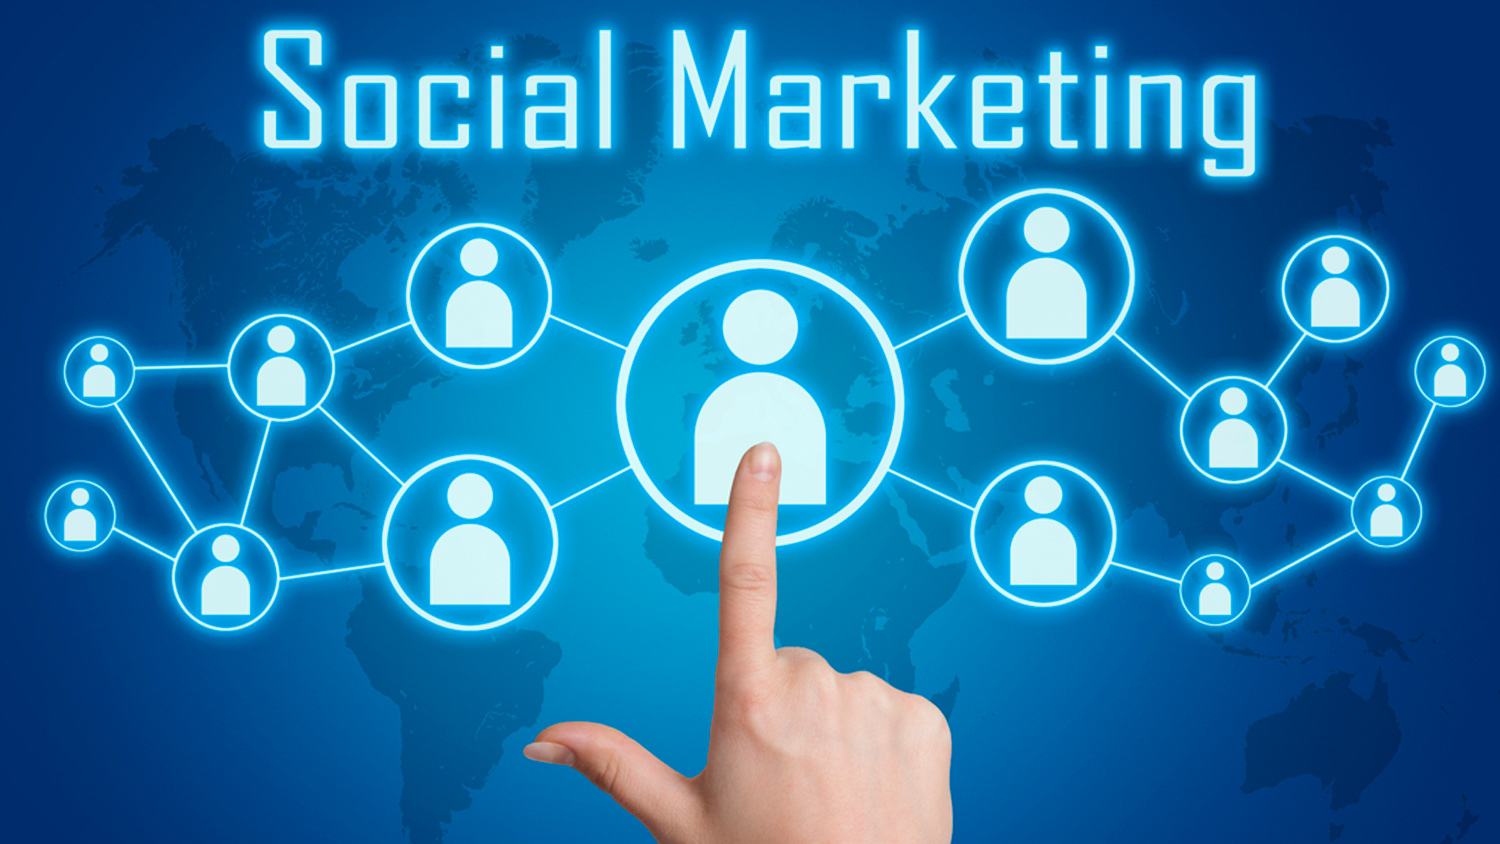 Marketing--Social Media Training